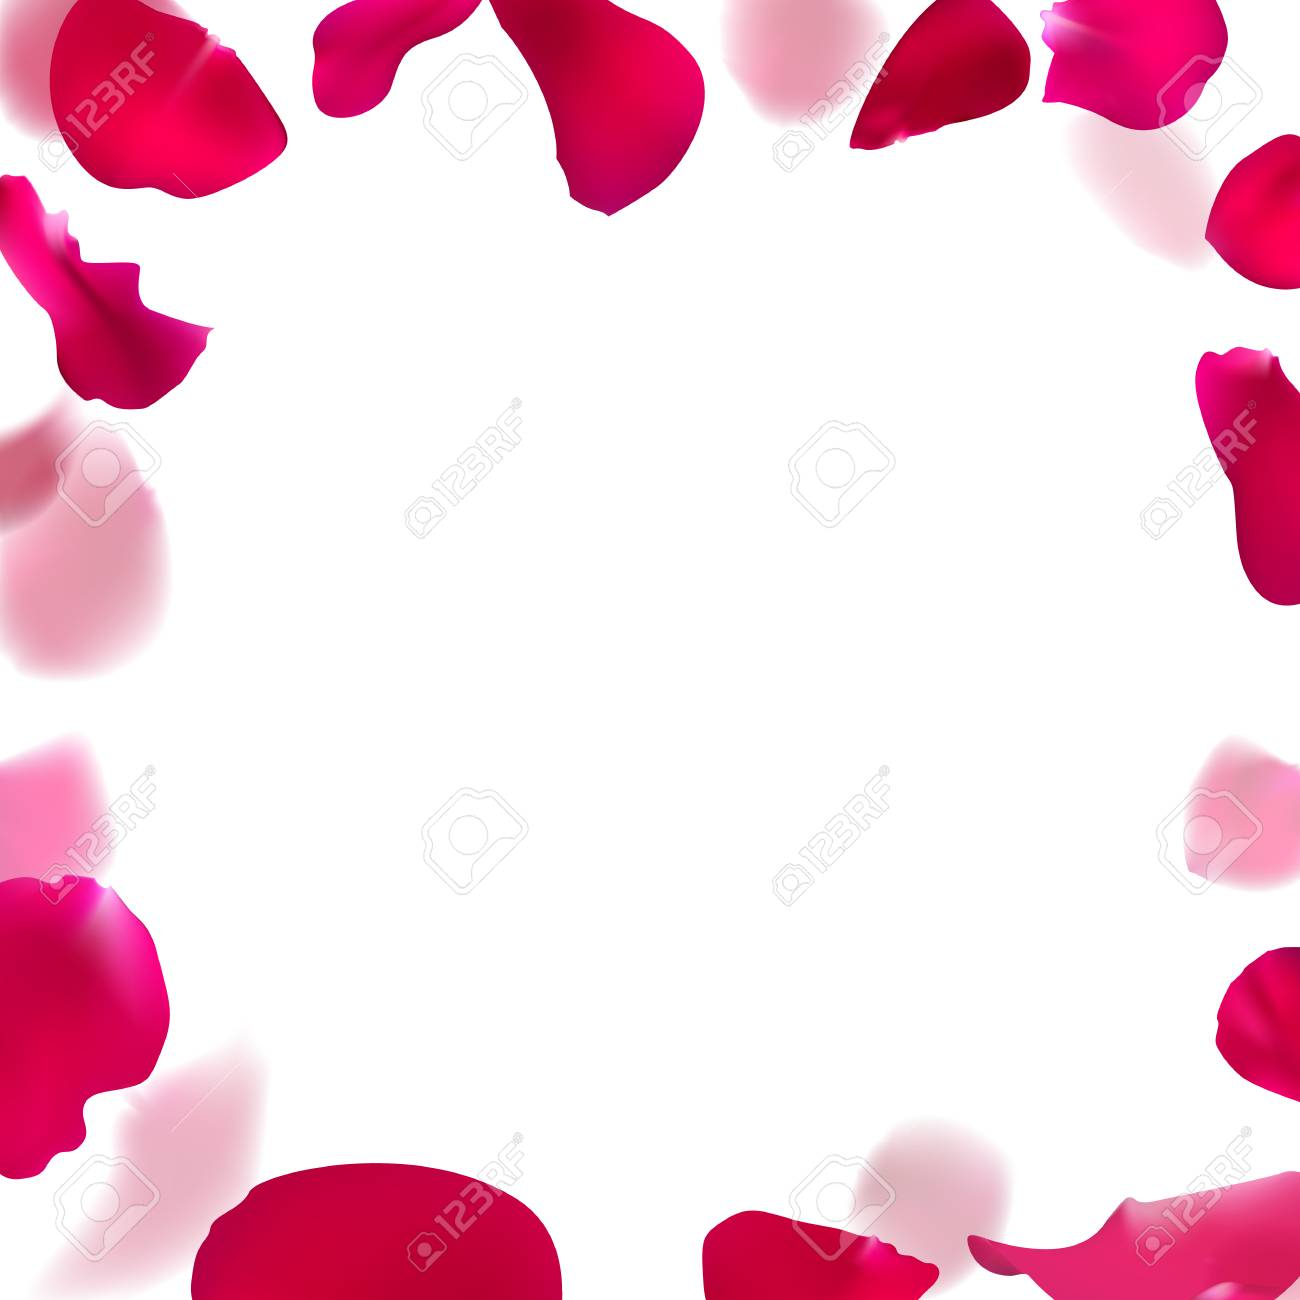 Template Wedding Invitation With Rose Petals Royalty Free Cliparts